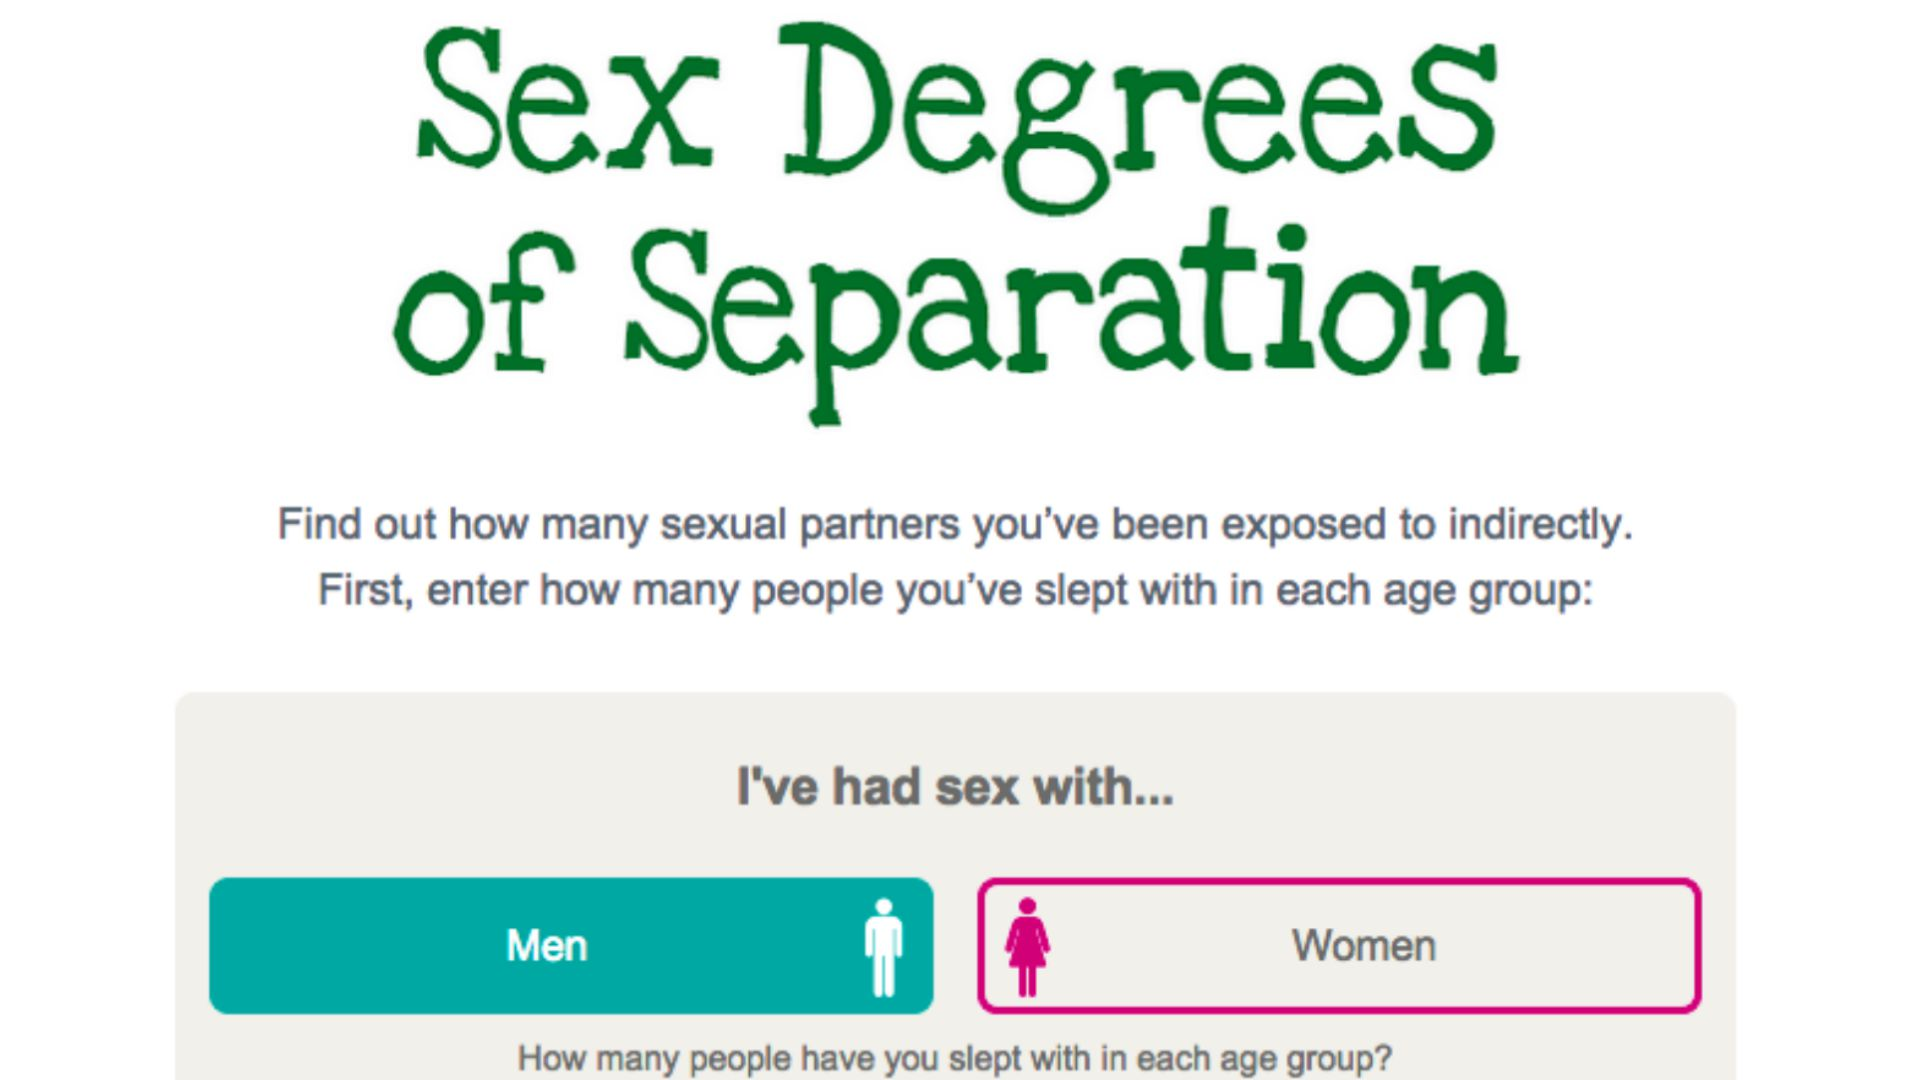 New calculator tool measures how many people you have indirect sexual links to